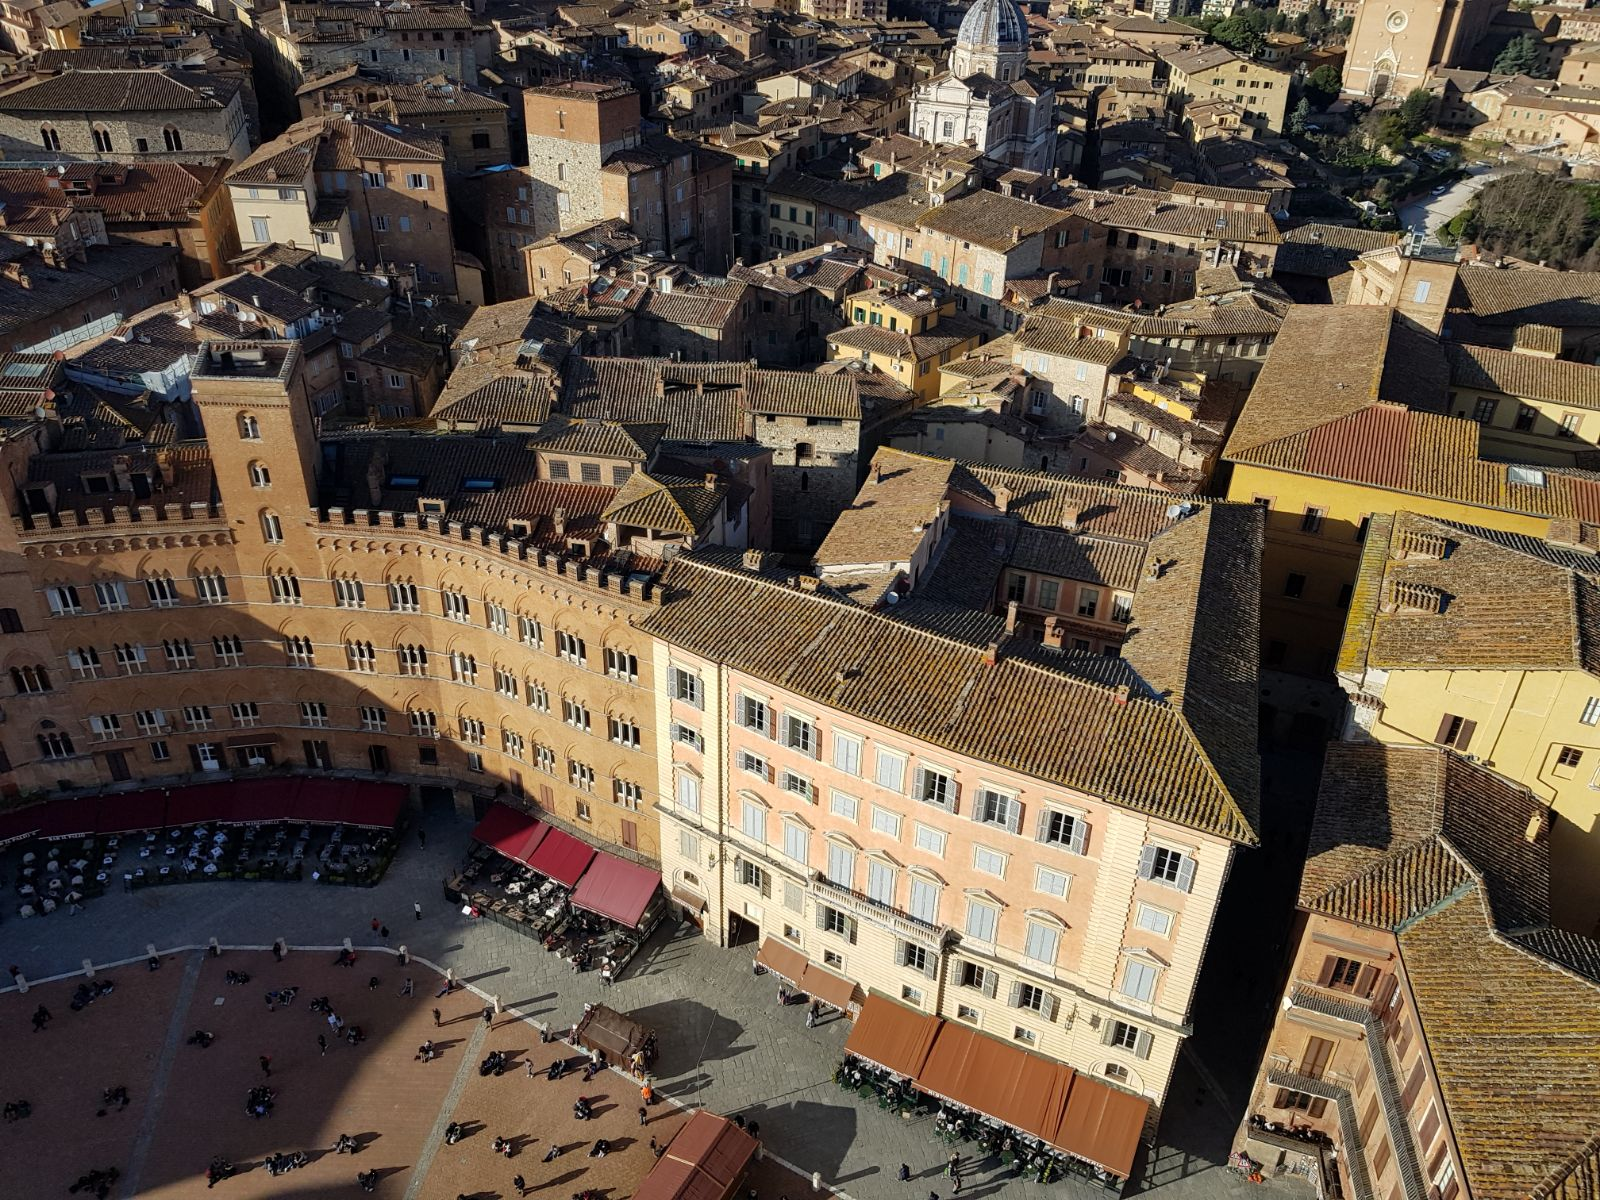 The view over Siena's Campo from Torre Mangia. (G. Przybylak)